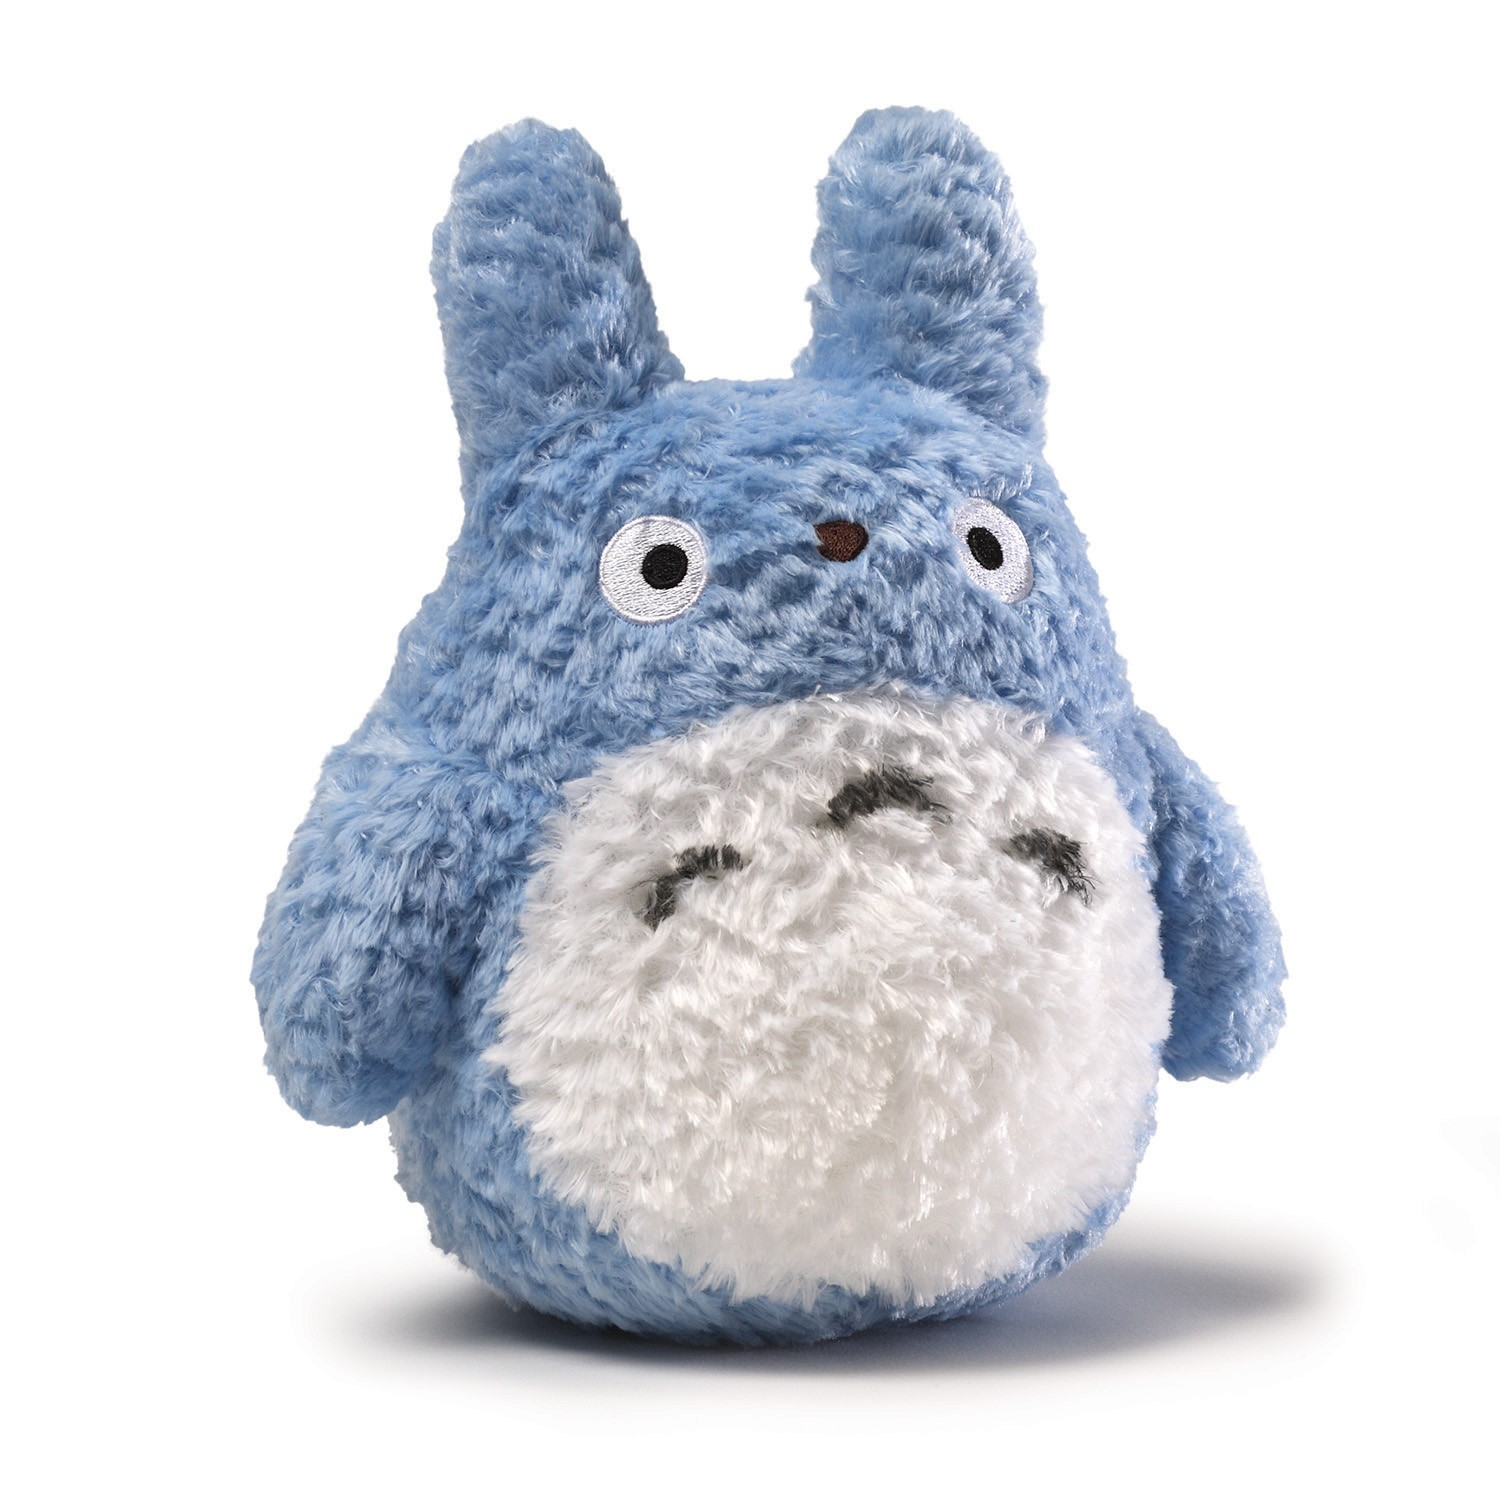 "My Neighbor Totoro: 5.5"" Blue Fluffy Medium Totoro Plush"